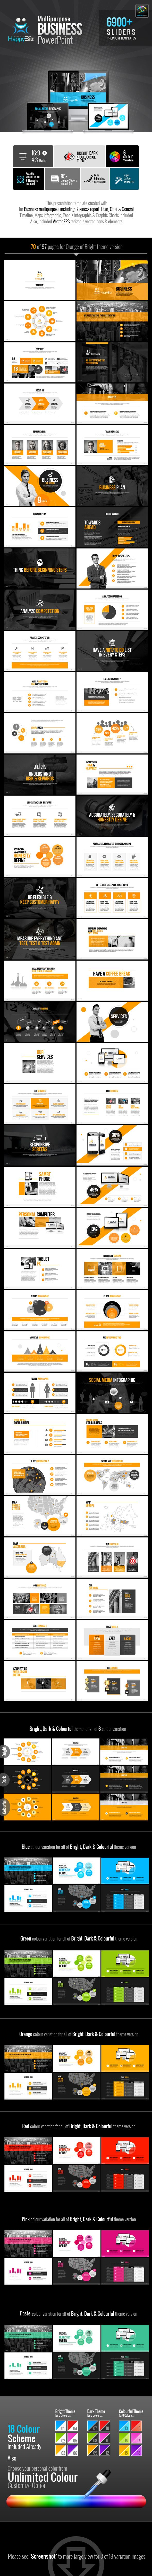 HappyBiz Multipurpose Business Template - Business PowerPoint Templates